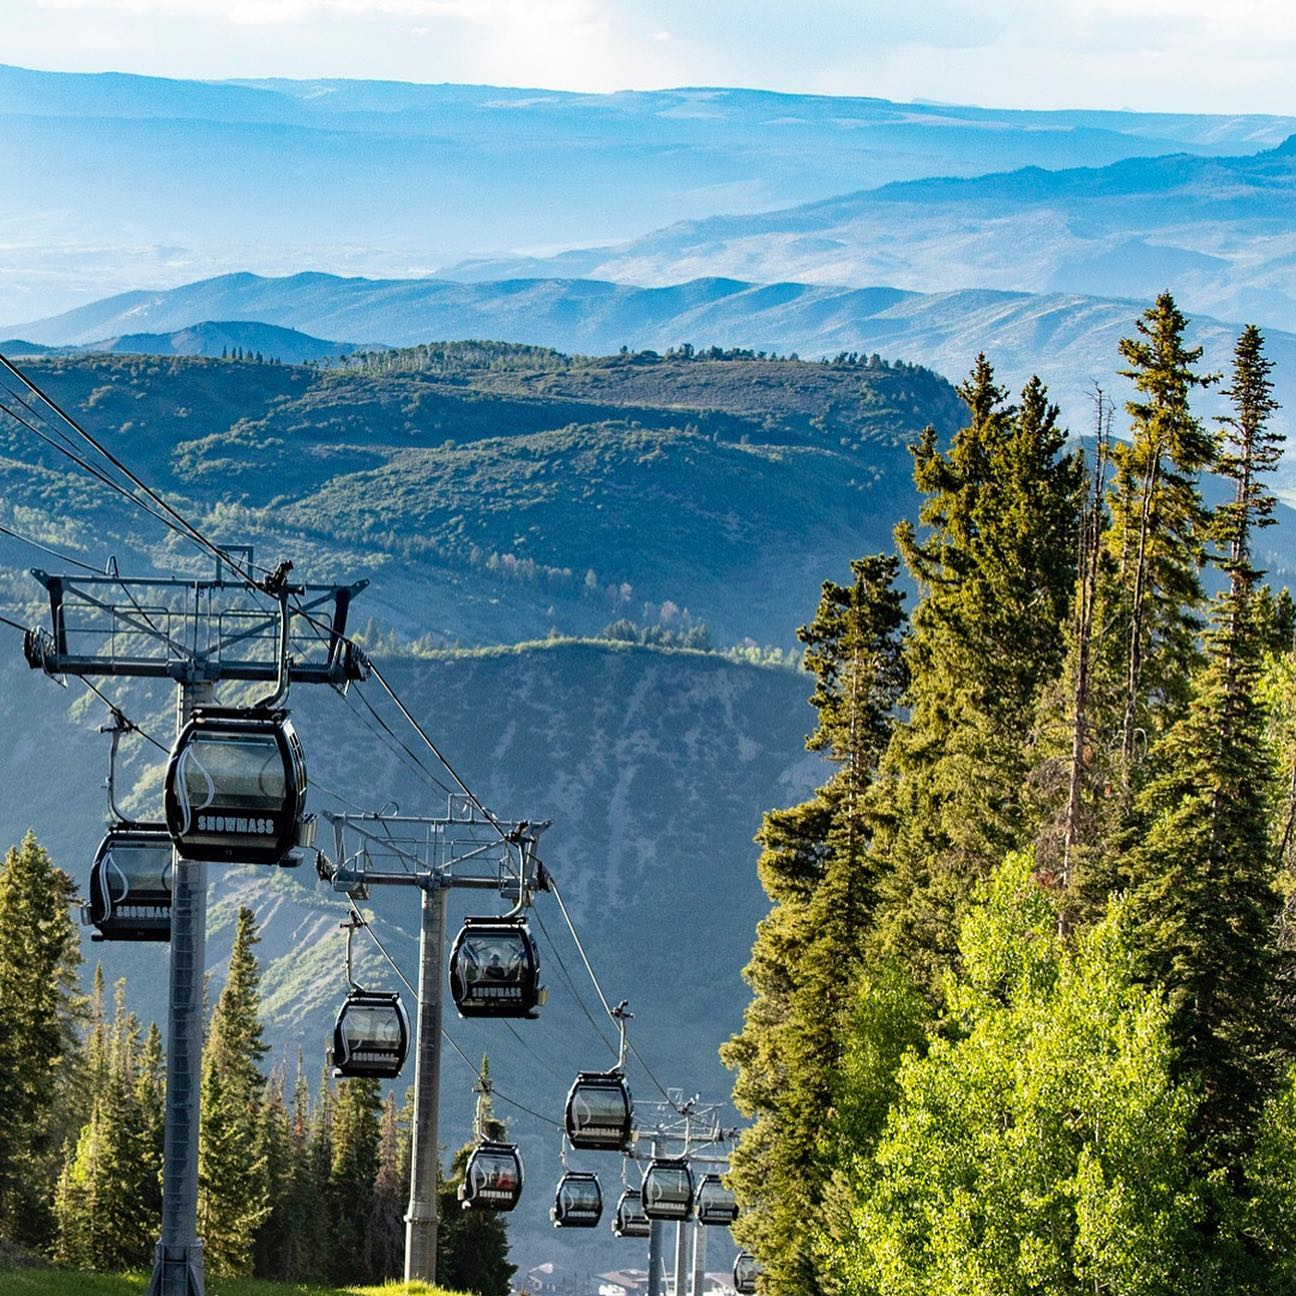 Image of the Elk Camp Gondola during the summer at Snowmass in Colorado